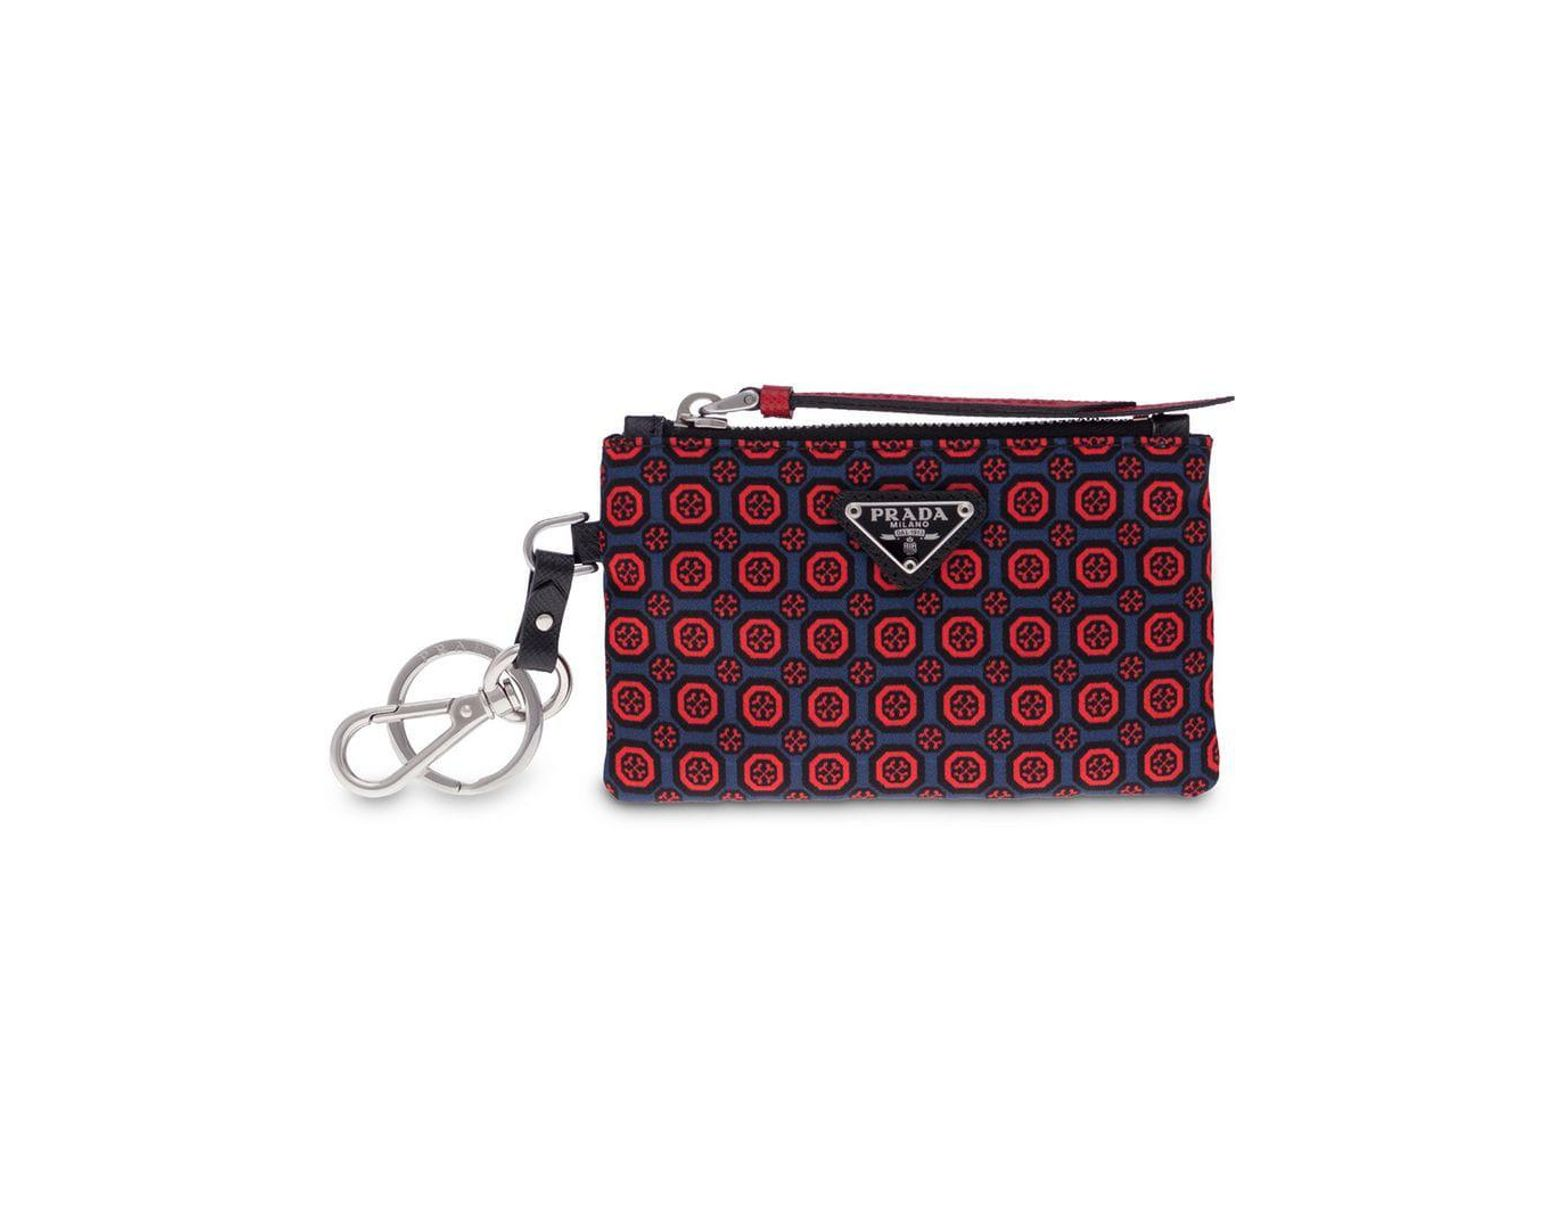 ab632a0a91b Prada Saffiano Leather And Nylon Keychain Trick in Red for Men - Lyst